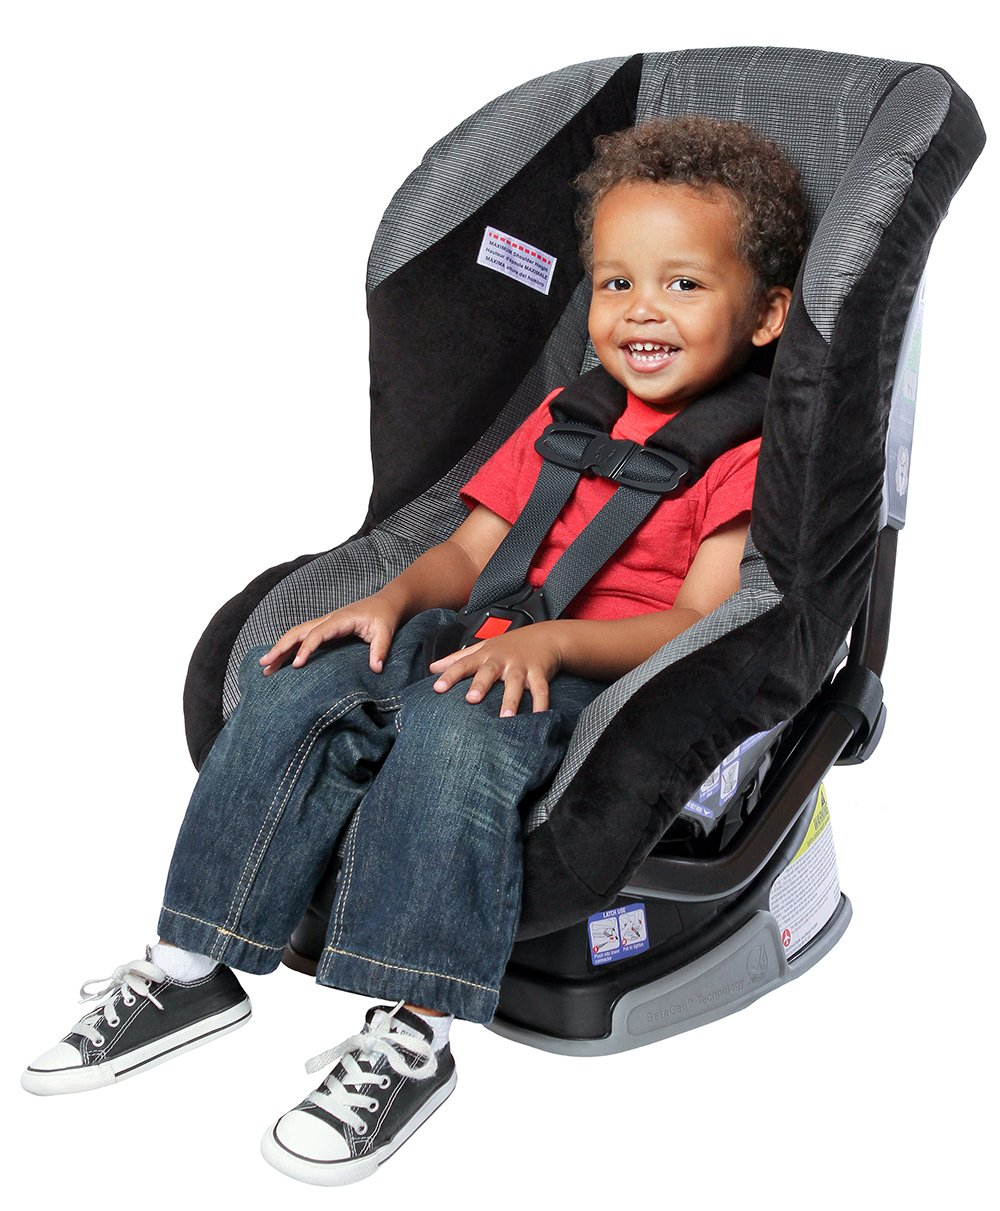 Amazon.com: Britax Roundabout G4 Convertible Car Seat, Onyx (Prior ...